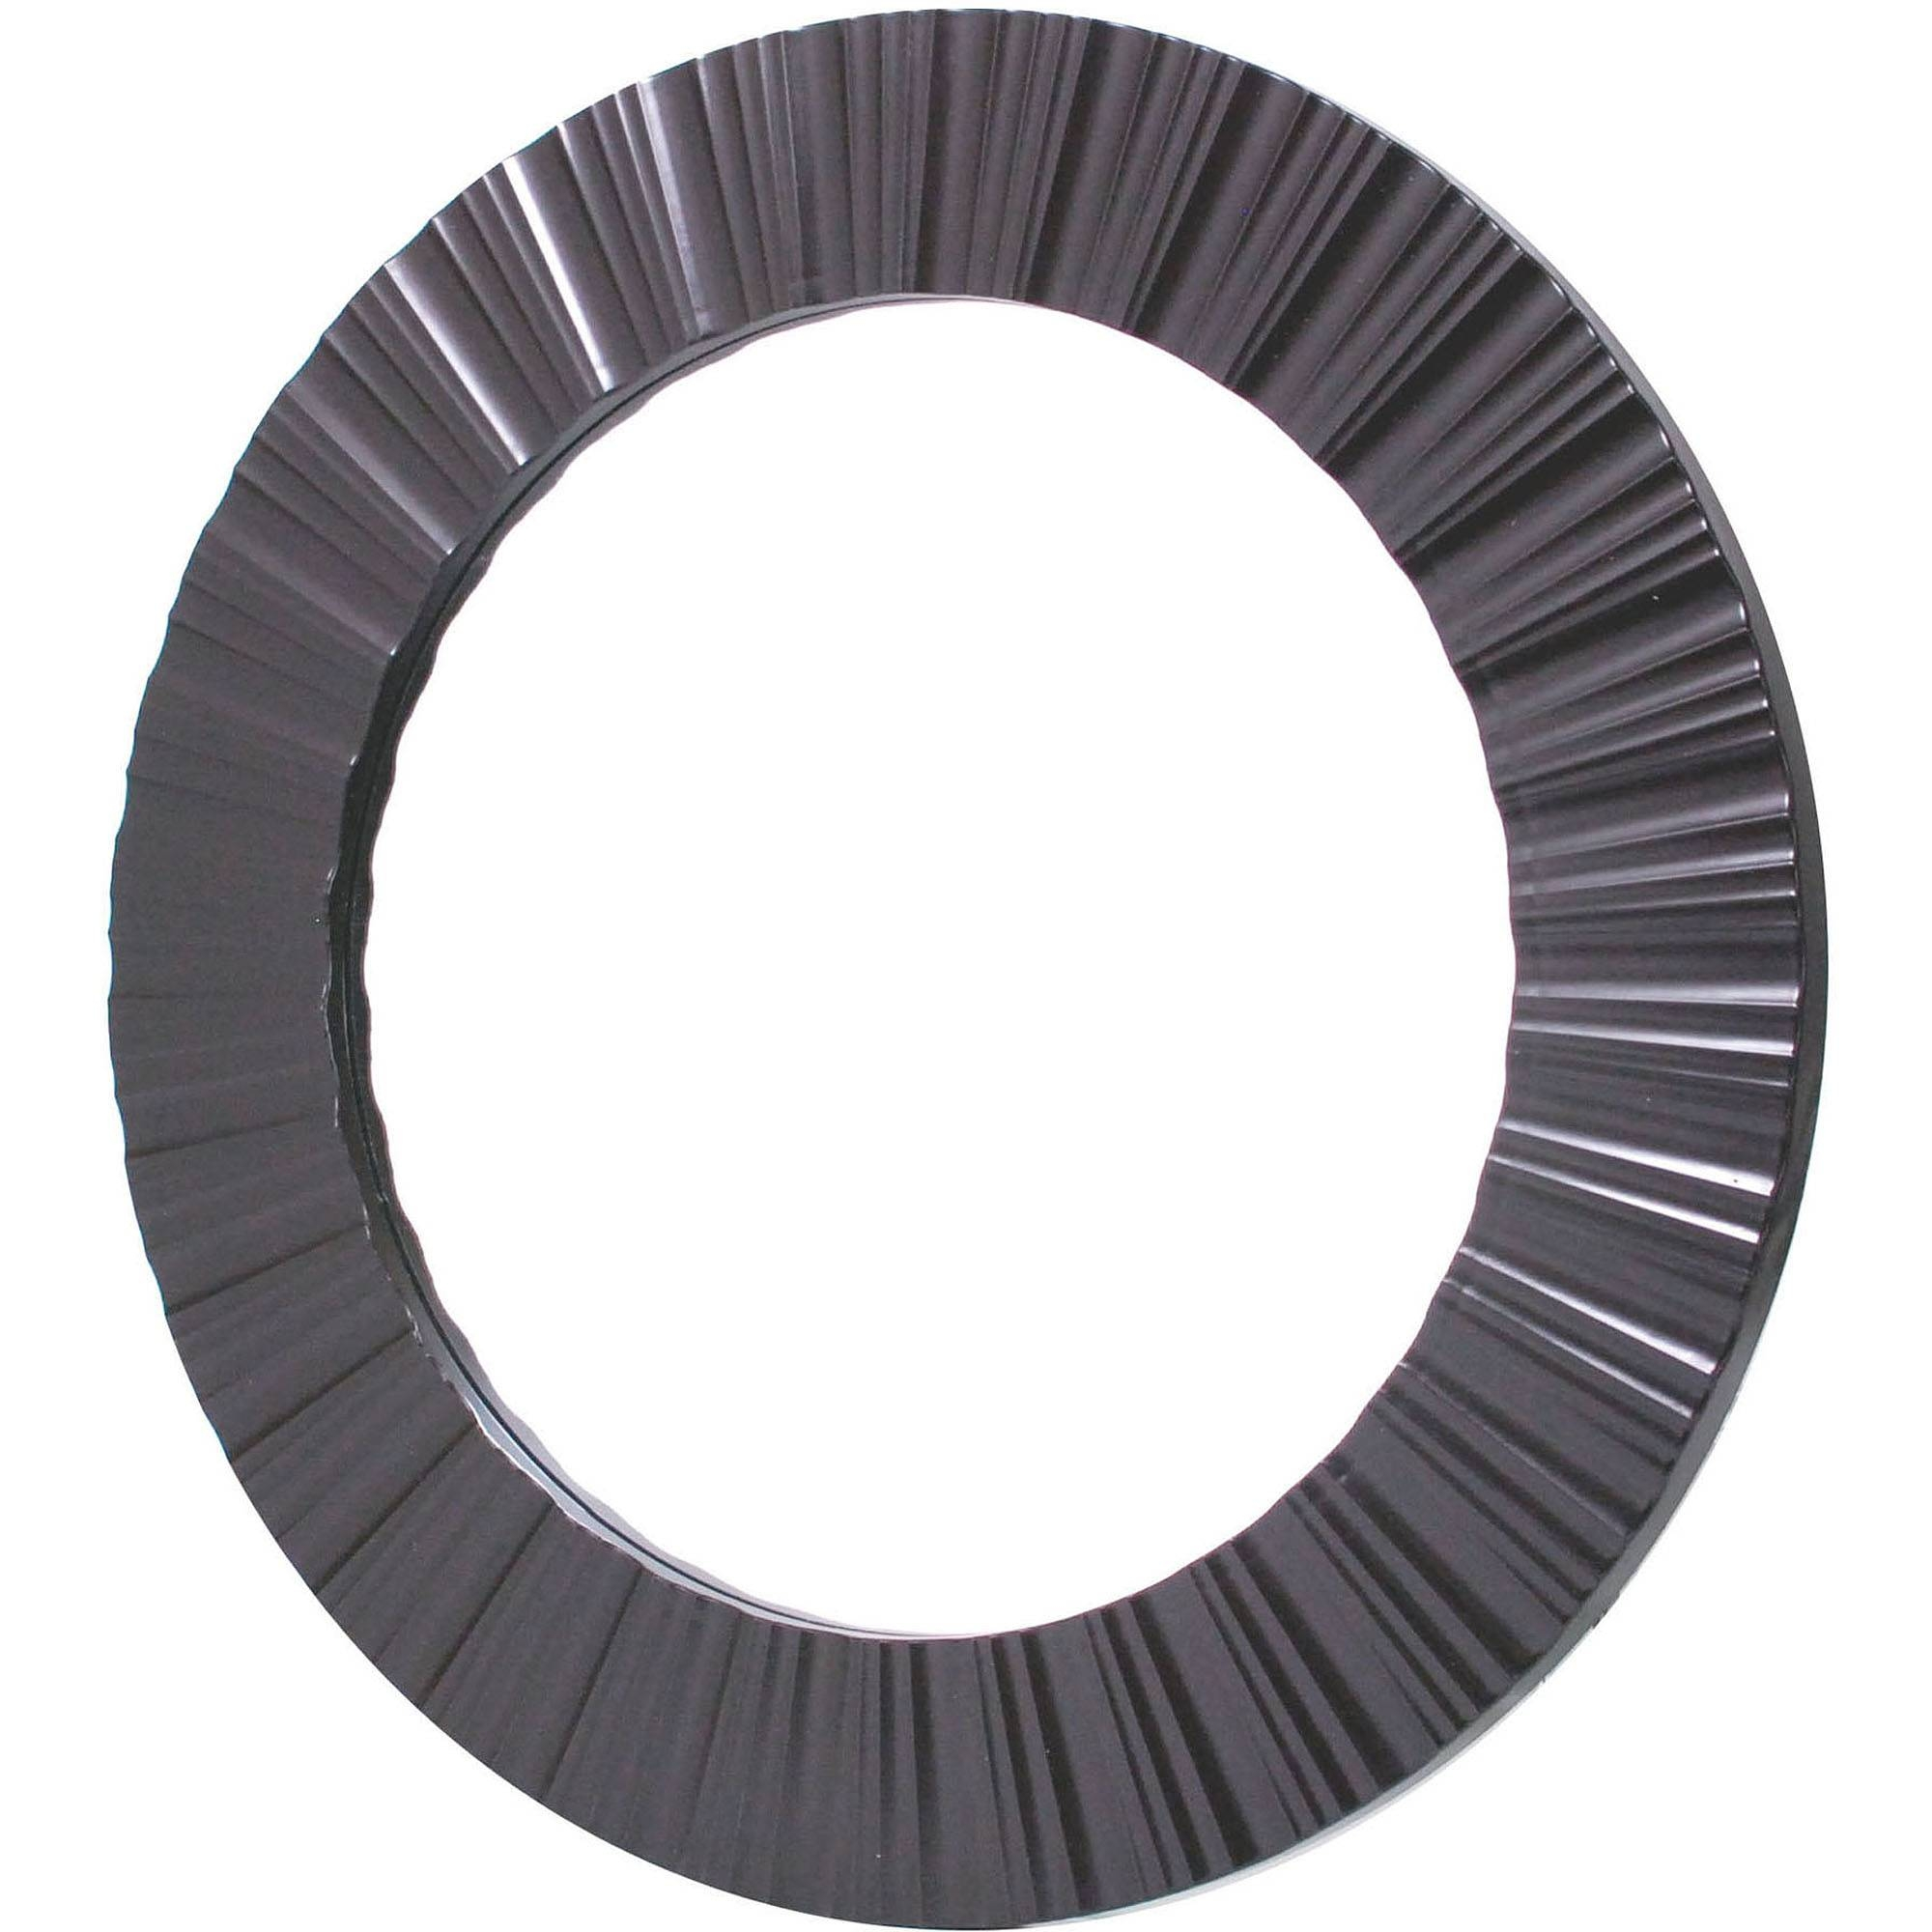 Large Round Mirrors inside Black Round Mirrors (Image 15 of 25)